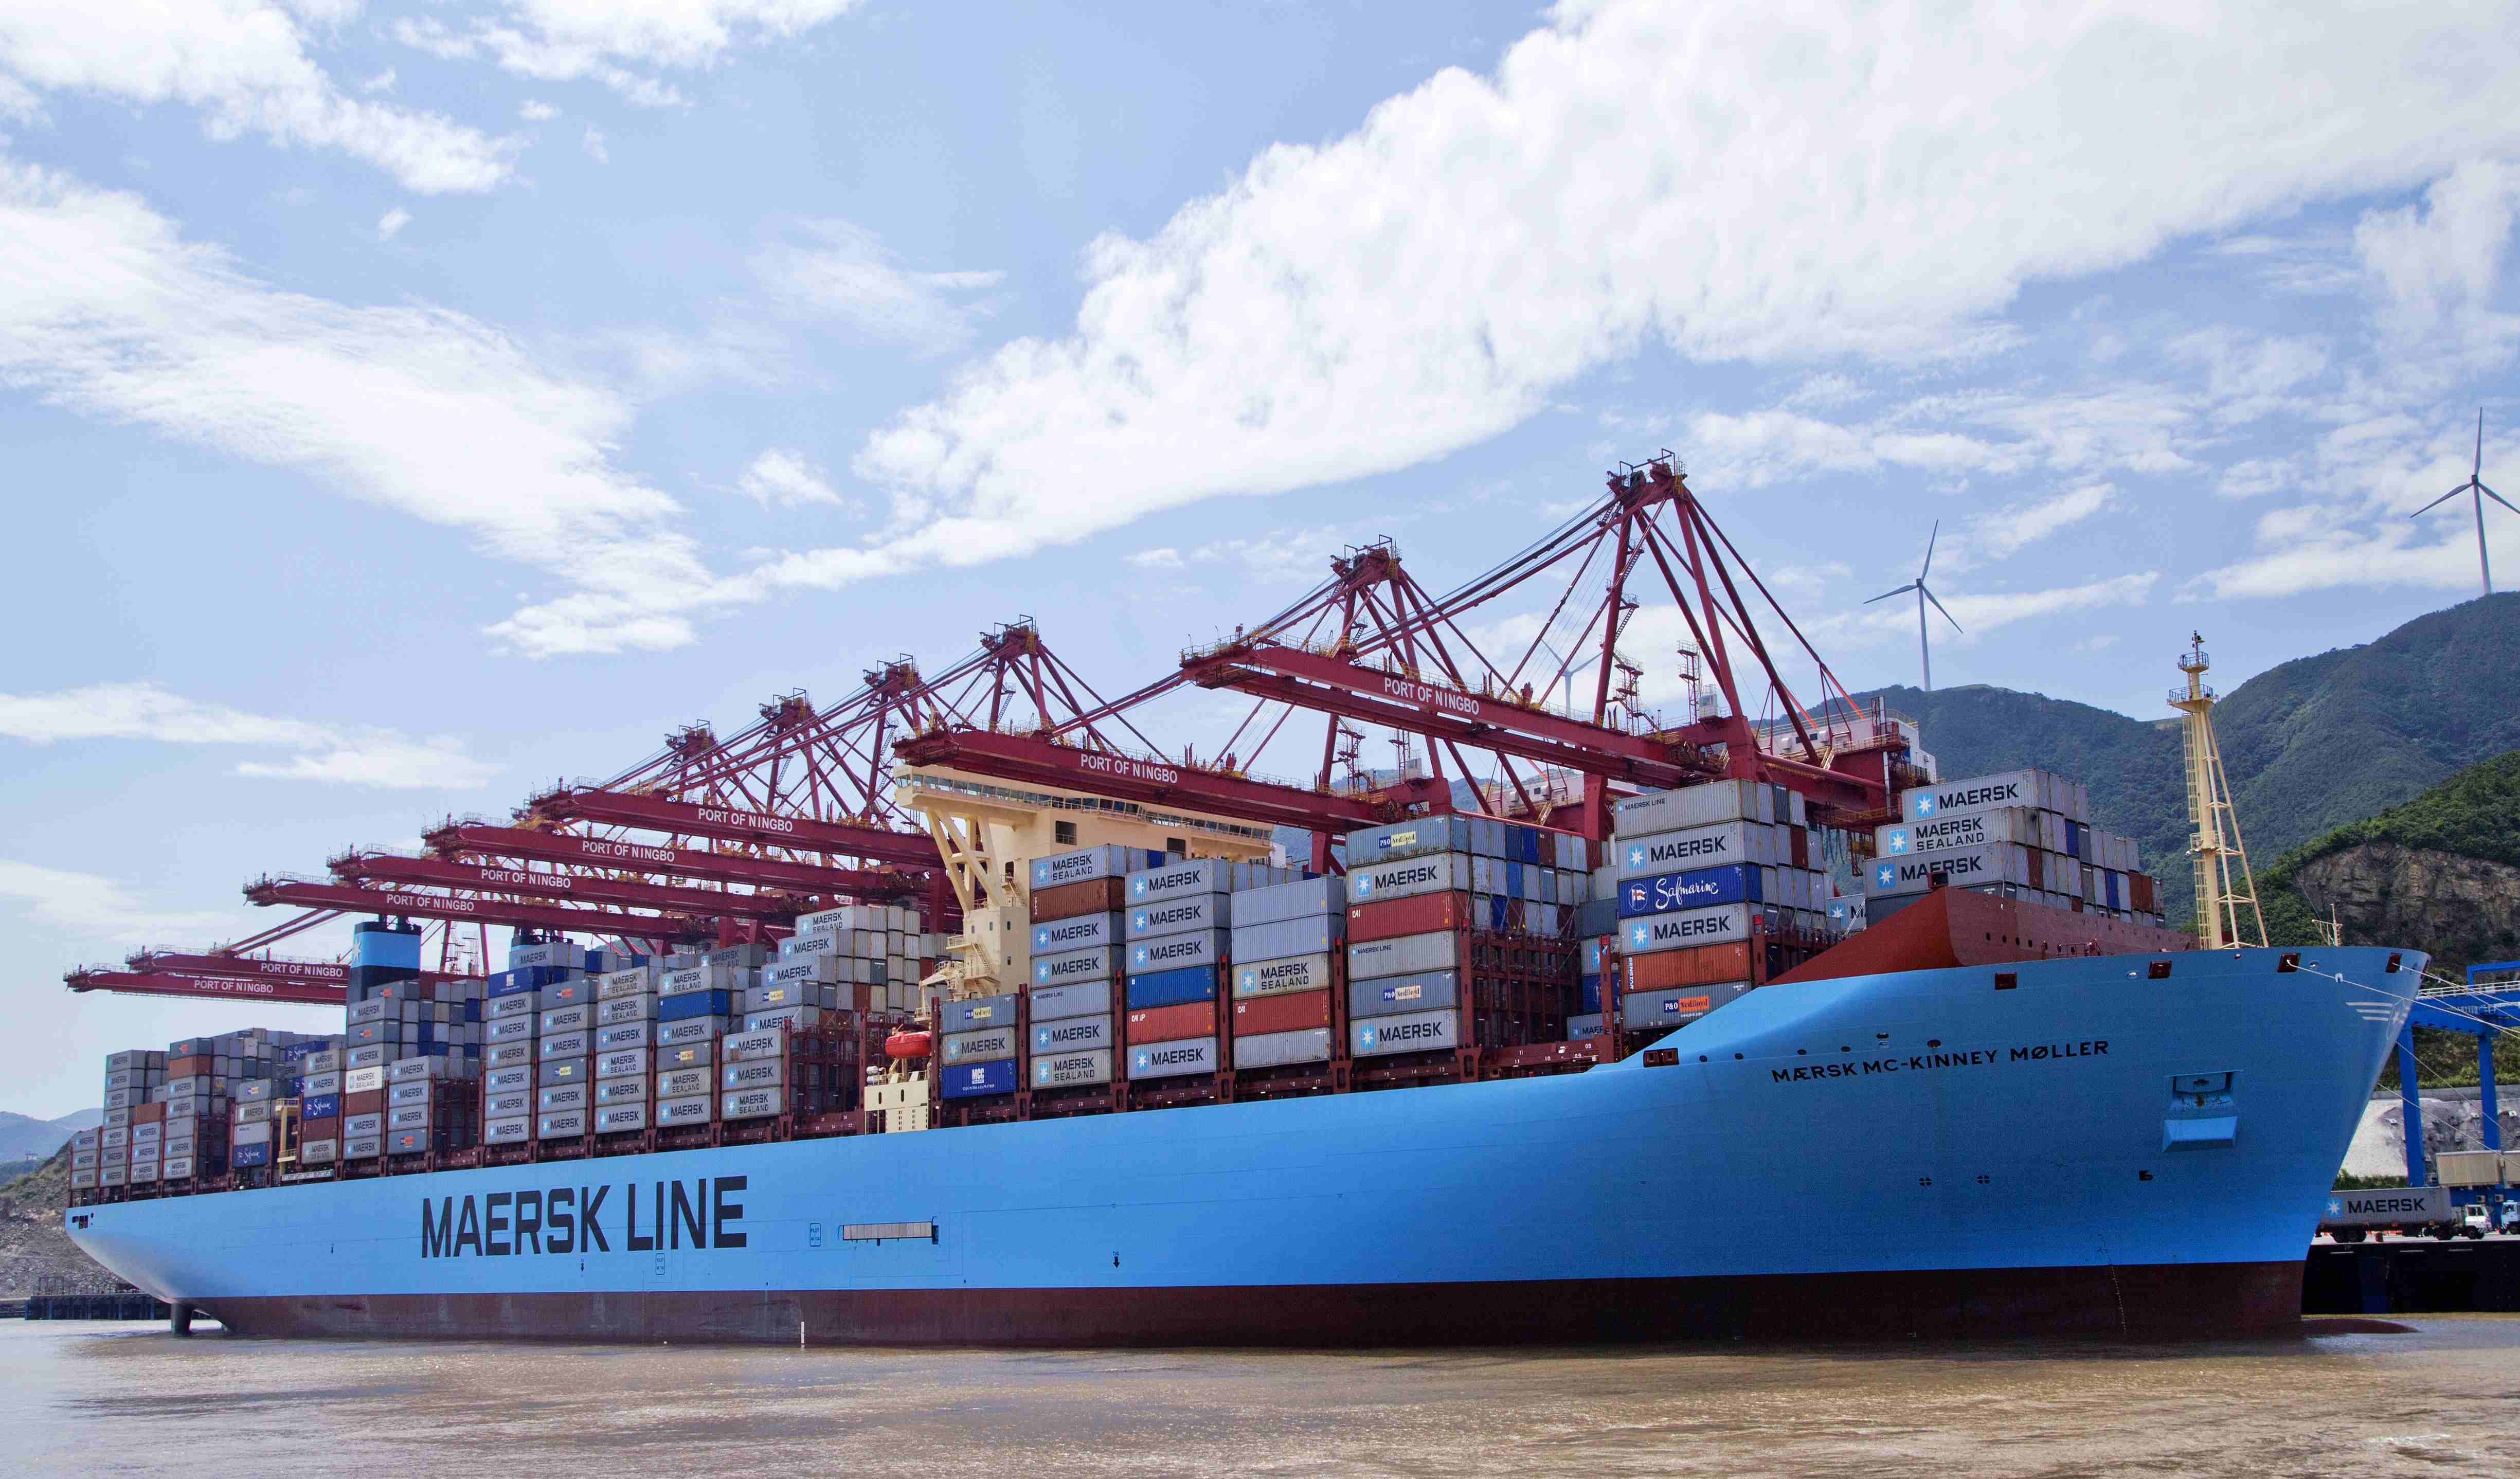 business and market exposure maersk line View thomas lee maersk's profile on linkedin,  thomas lee maersk manager at maersk line location hong kong  asia pacific regional and south china exposure.